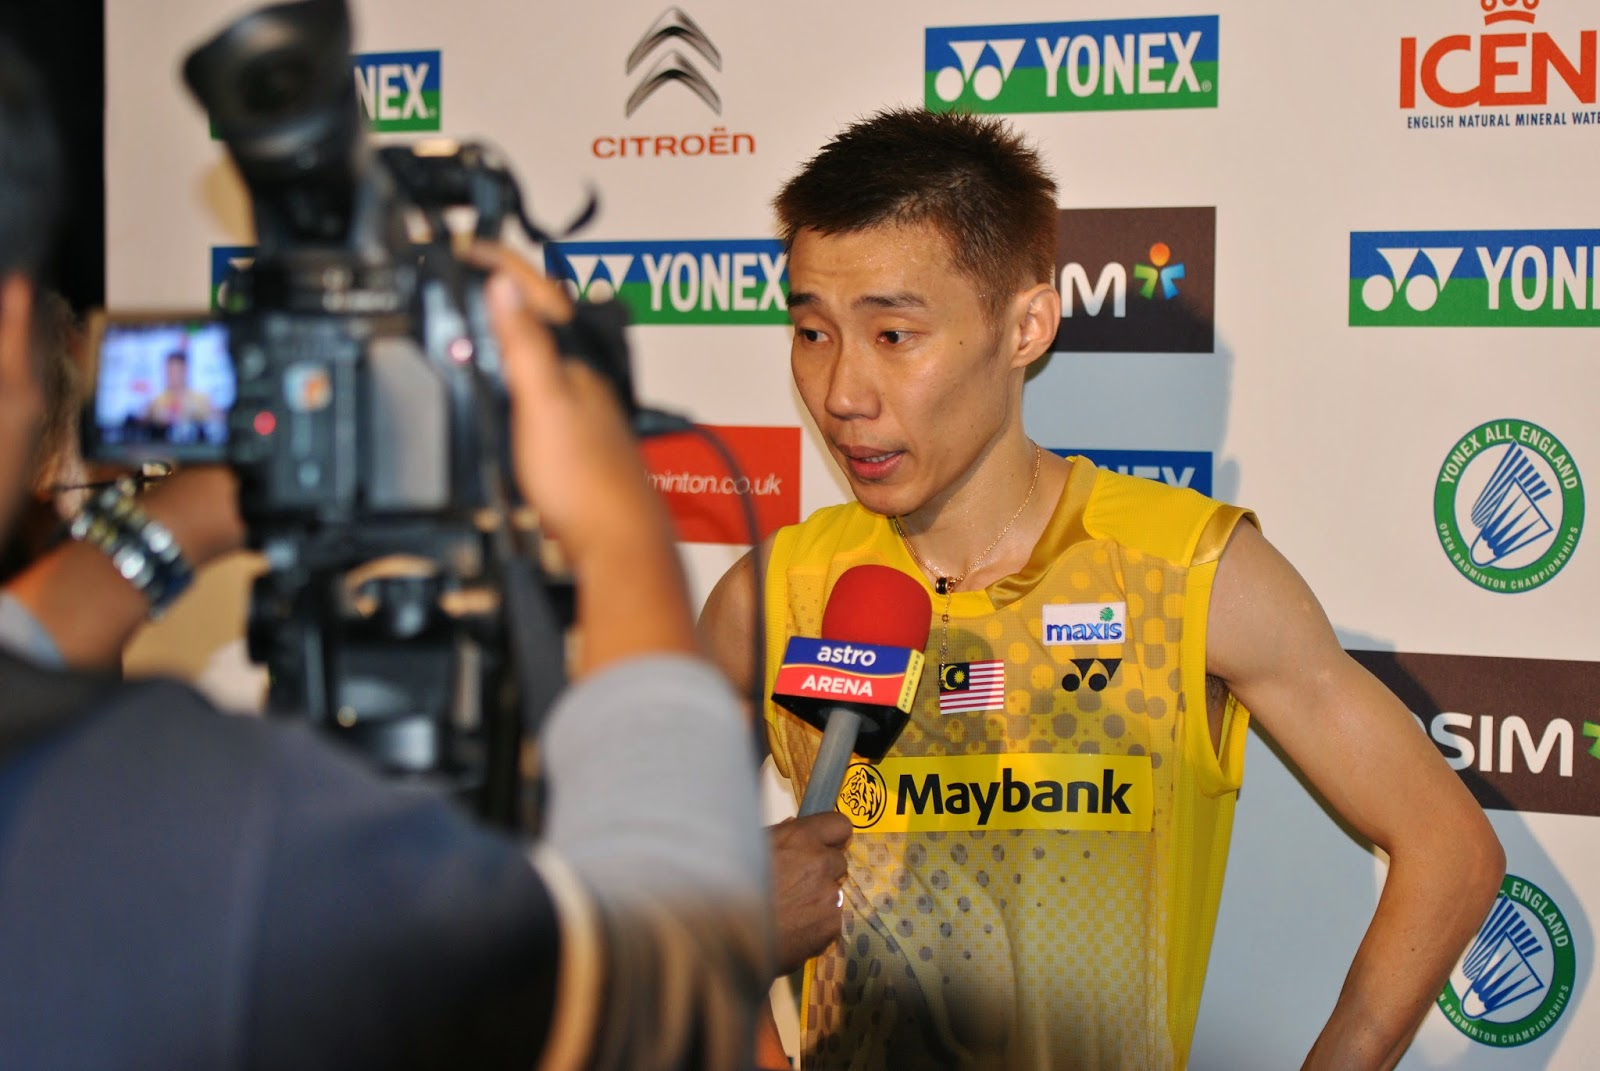 Lee Chong Wei's drug use hearing set for April